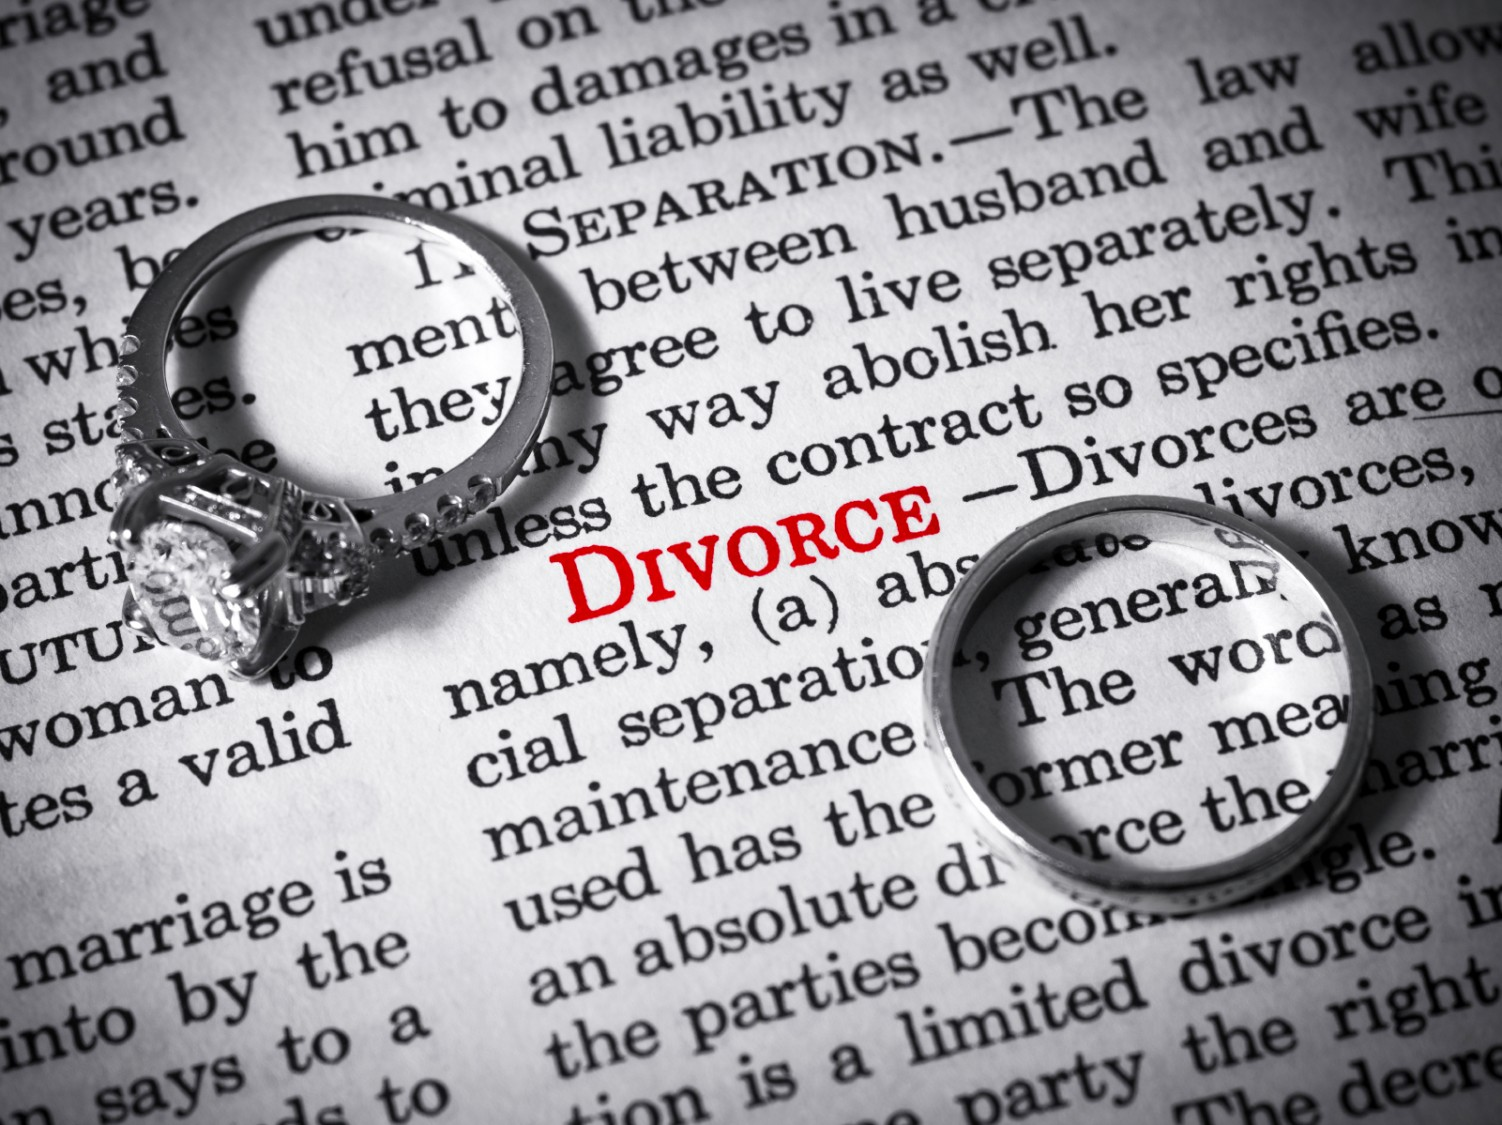 pending divorce and dating